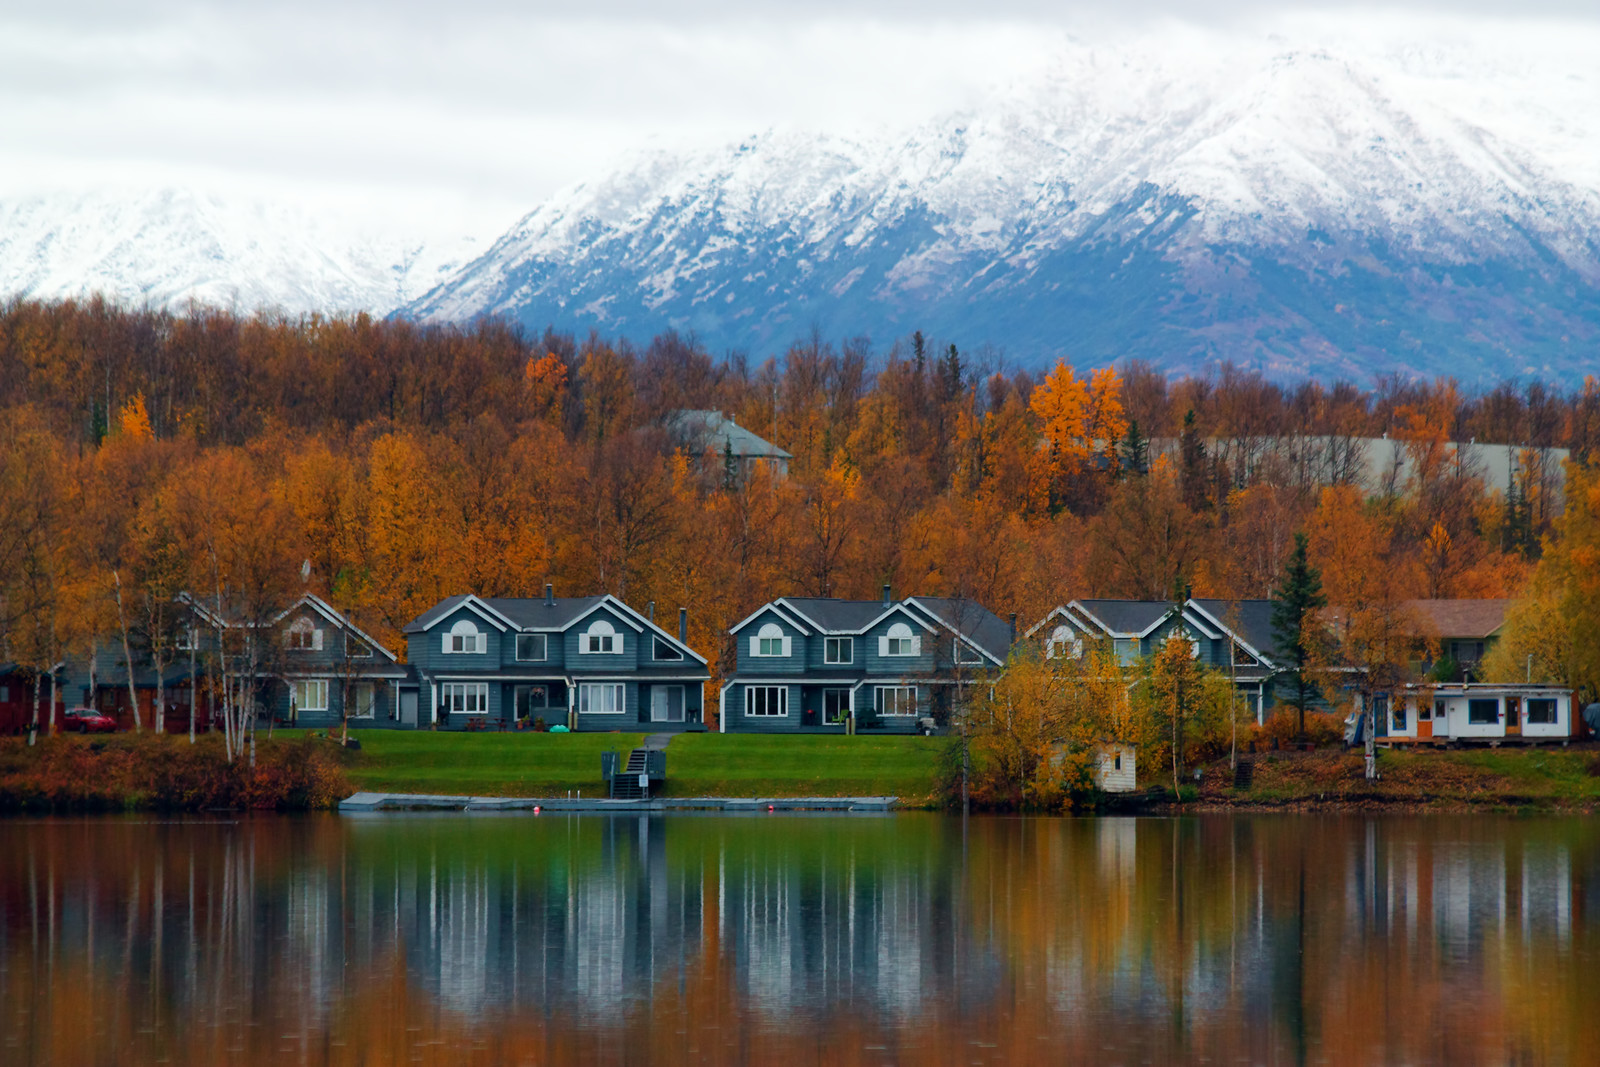 Top 5 Places to Retire in Alaska - Homes on the shore of  lake in wasilla with the mountains in the background surrounded by autumn colored trees